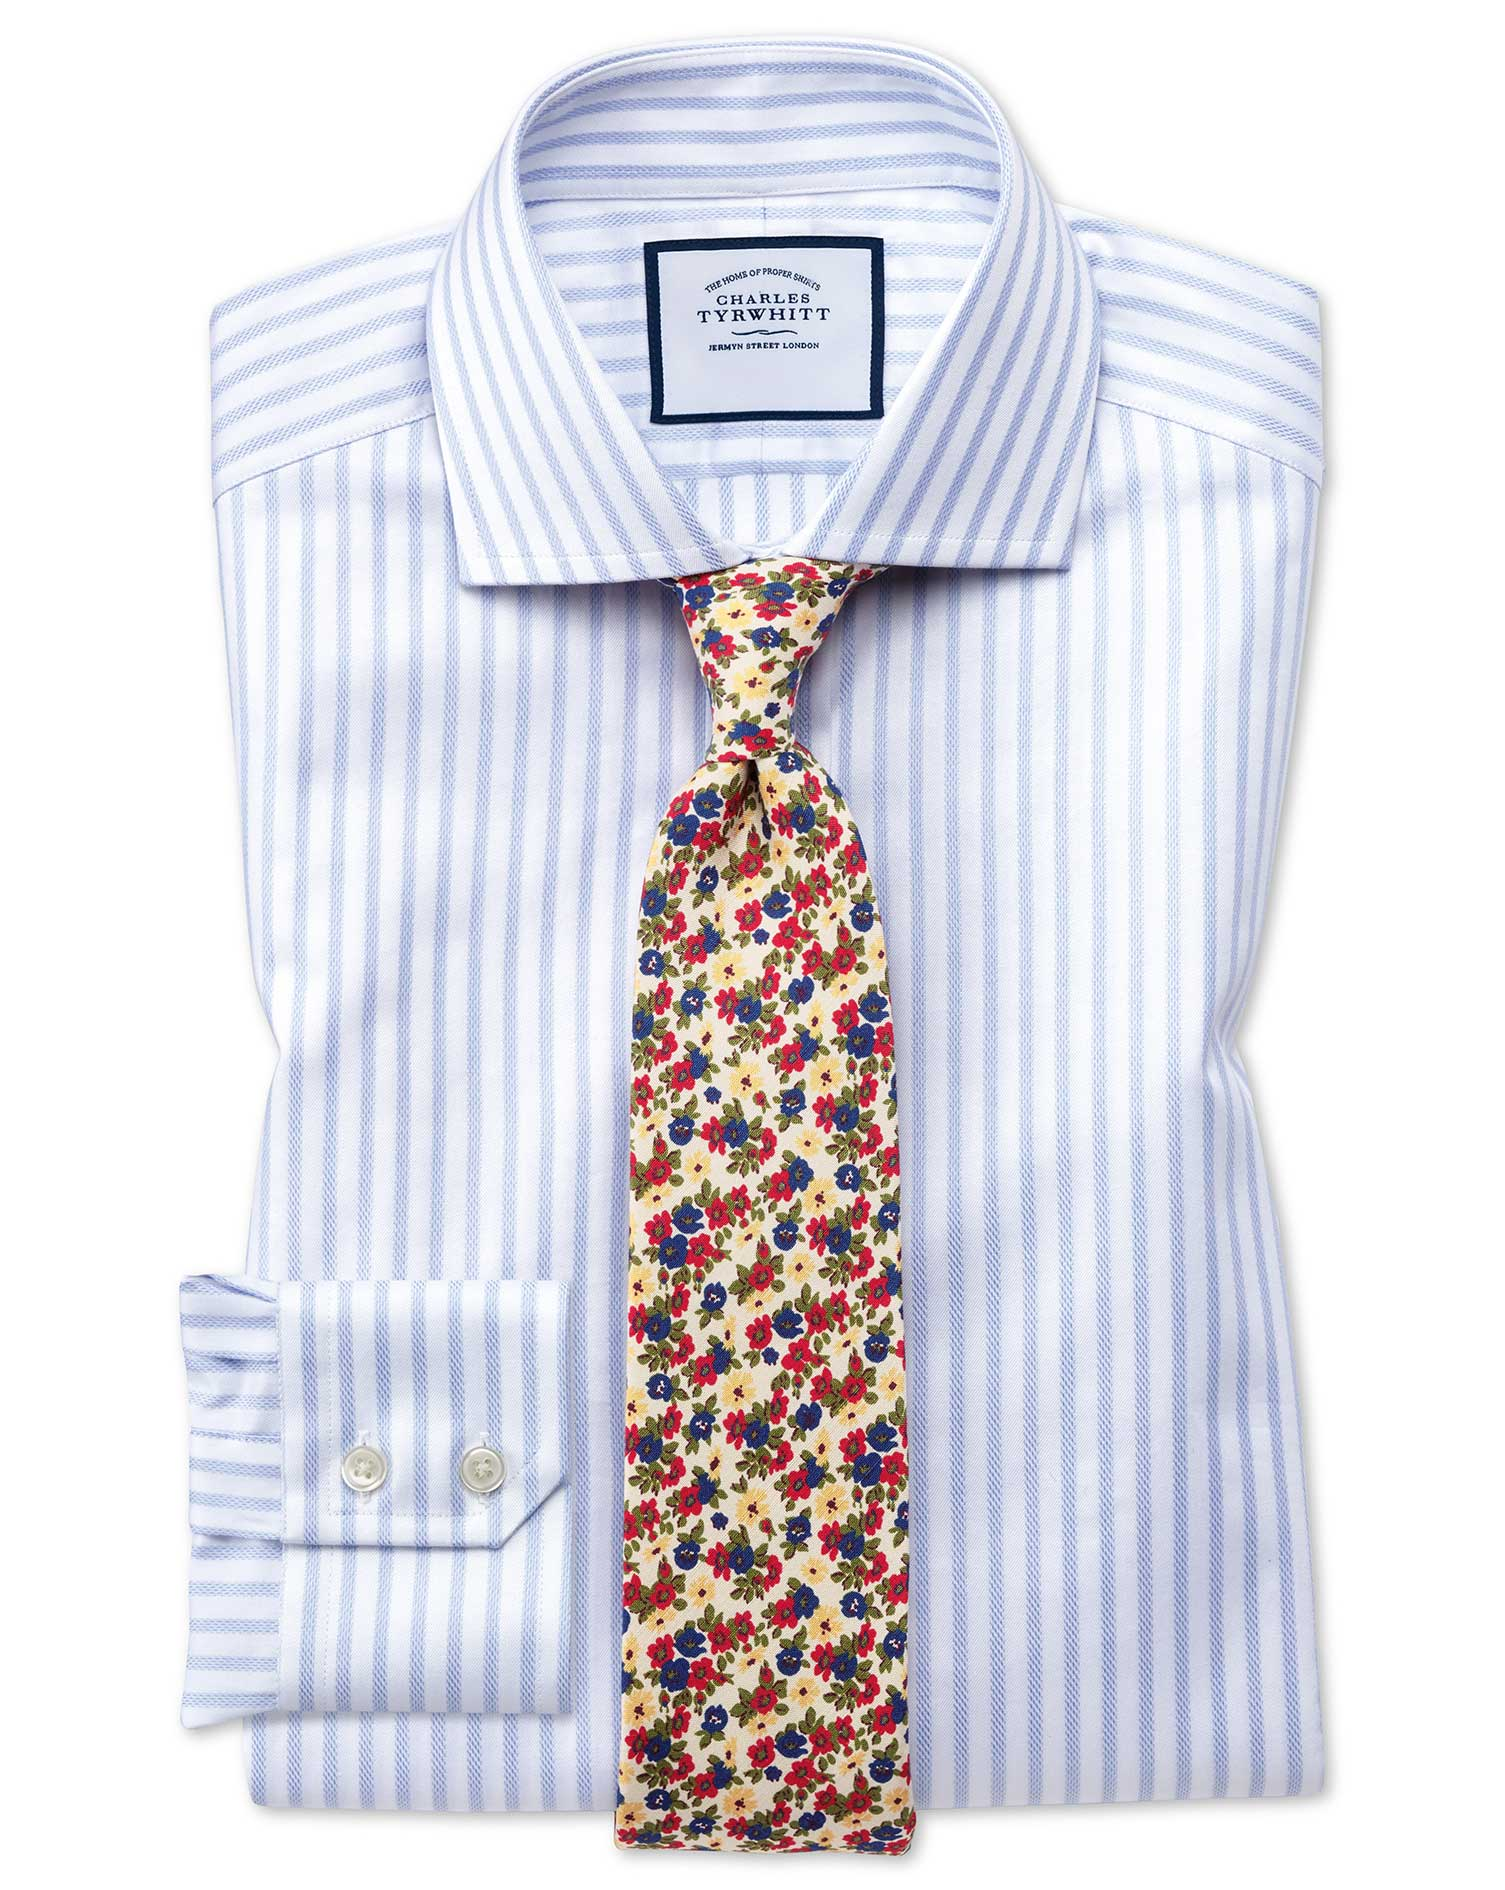 Slim Fit Cutaway Textured Stripe Blue and White Cotton Formal Shirt Single Cuff Size 15.5/34 by Char